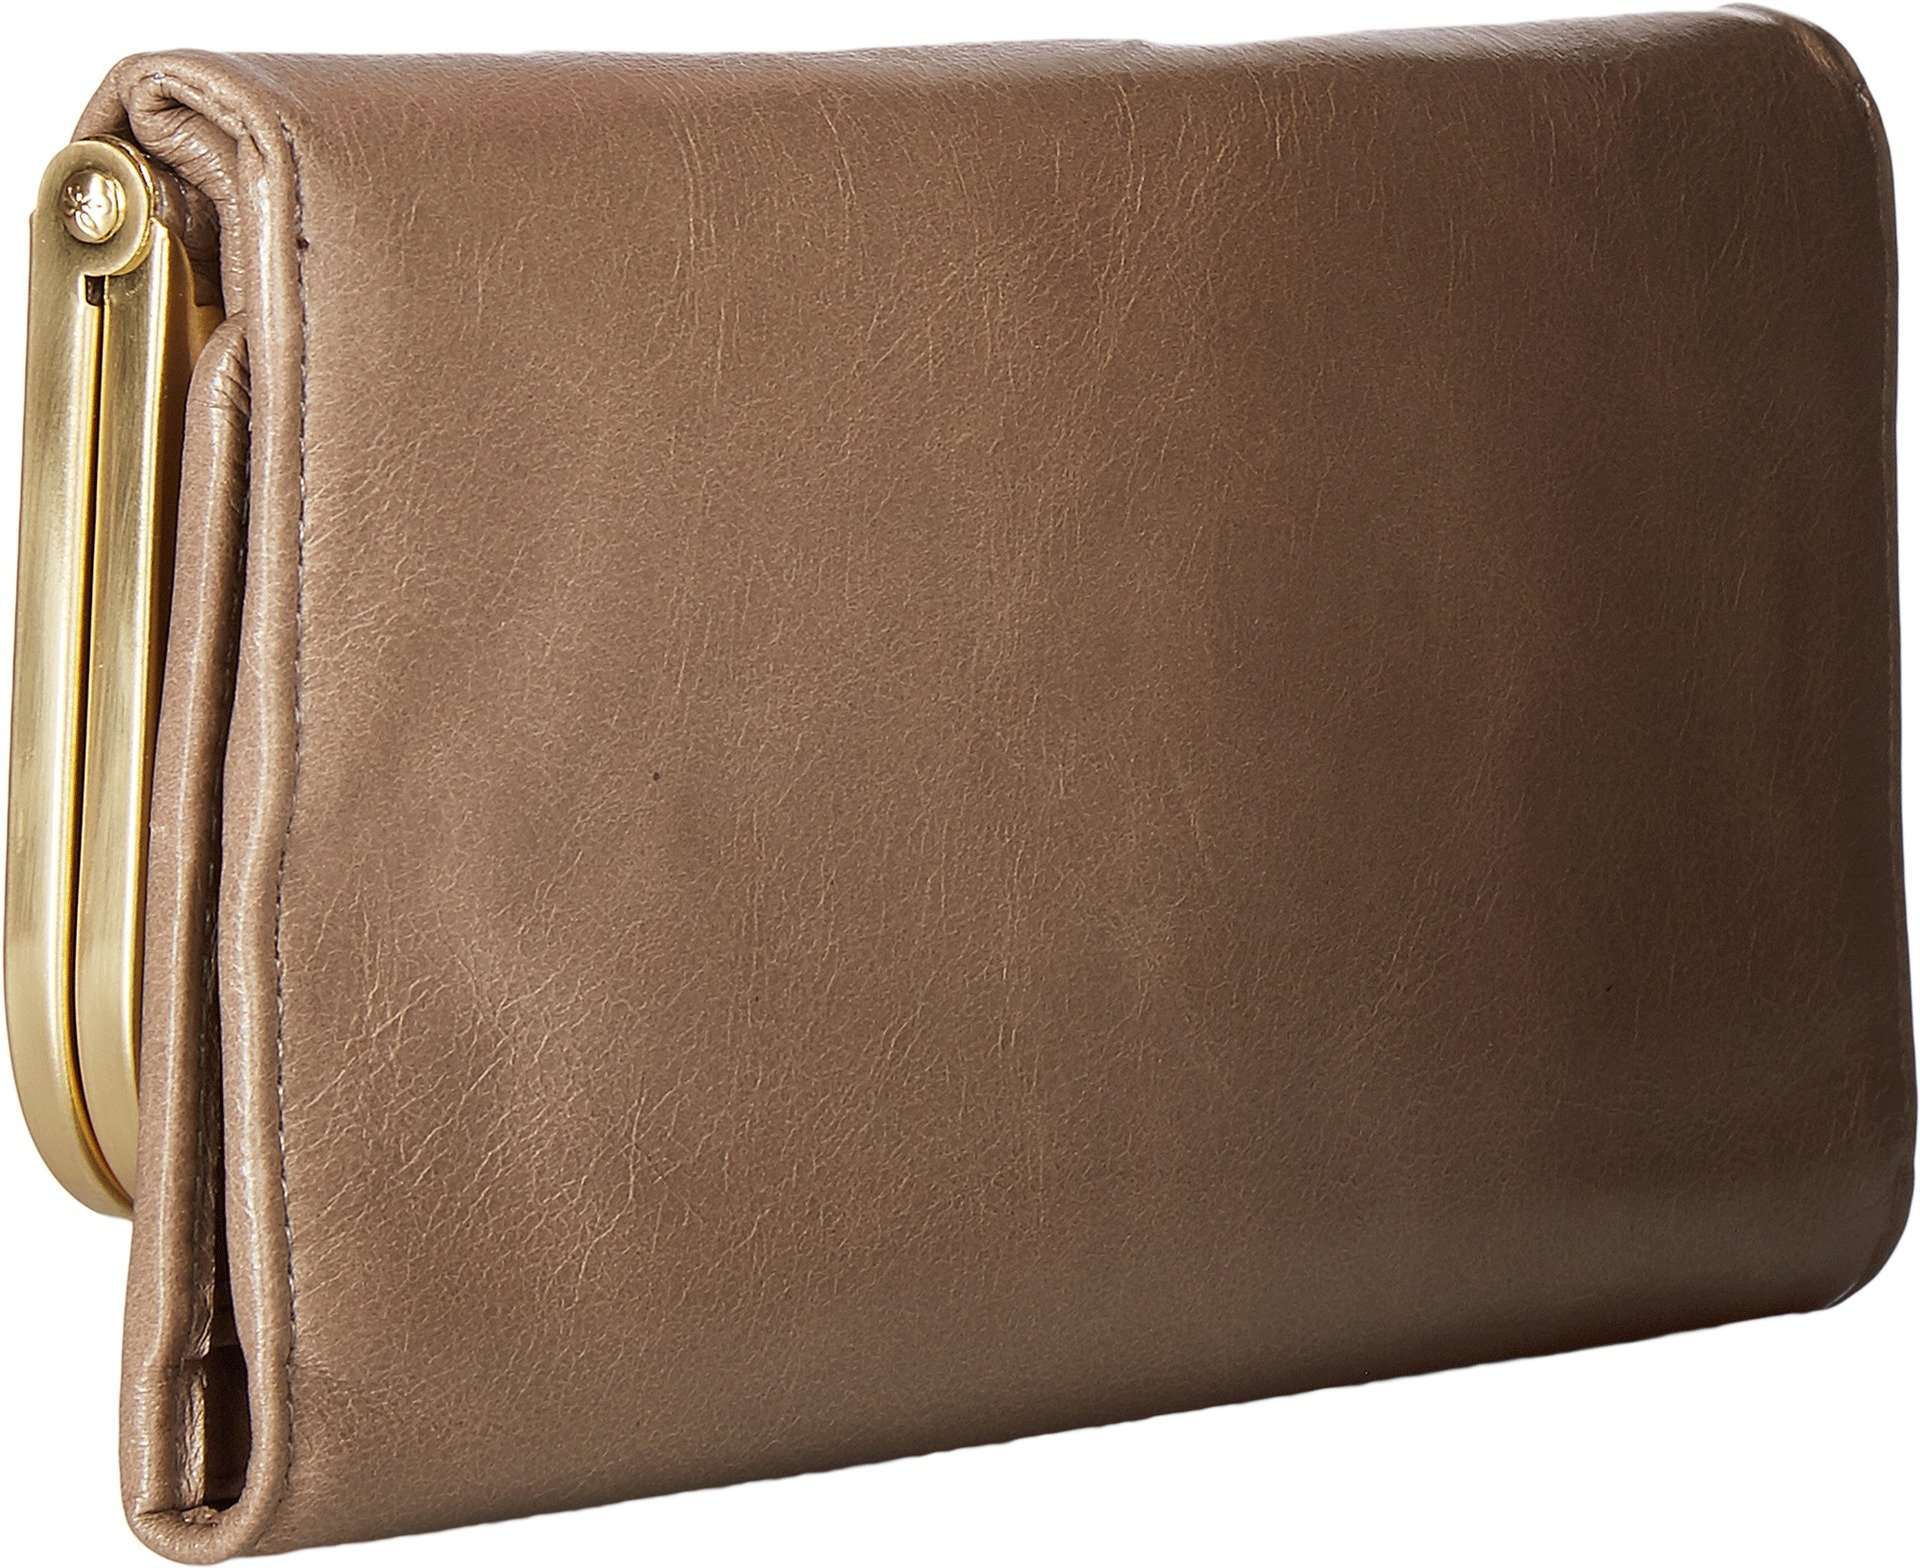 Hobo Womens Rachel Vintage Wallet Leather Clutch Purse (Ash) by HOBO (Image #2)